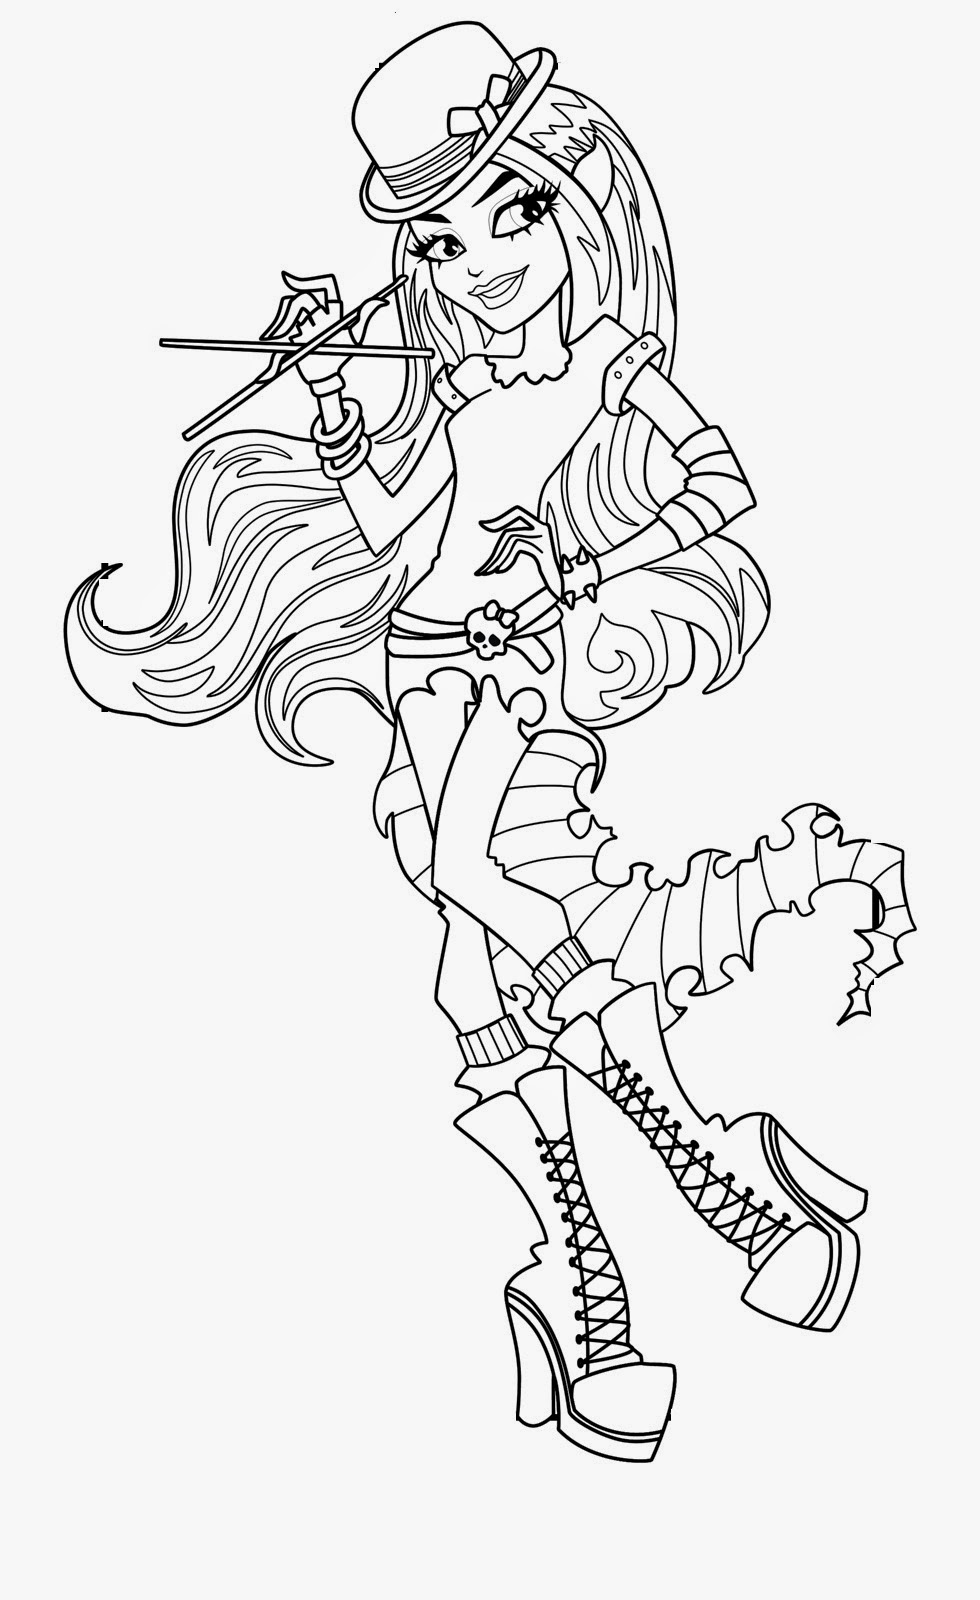 Coloring Pages: Monster High Coloring Pages Free and Printable